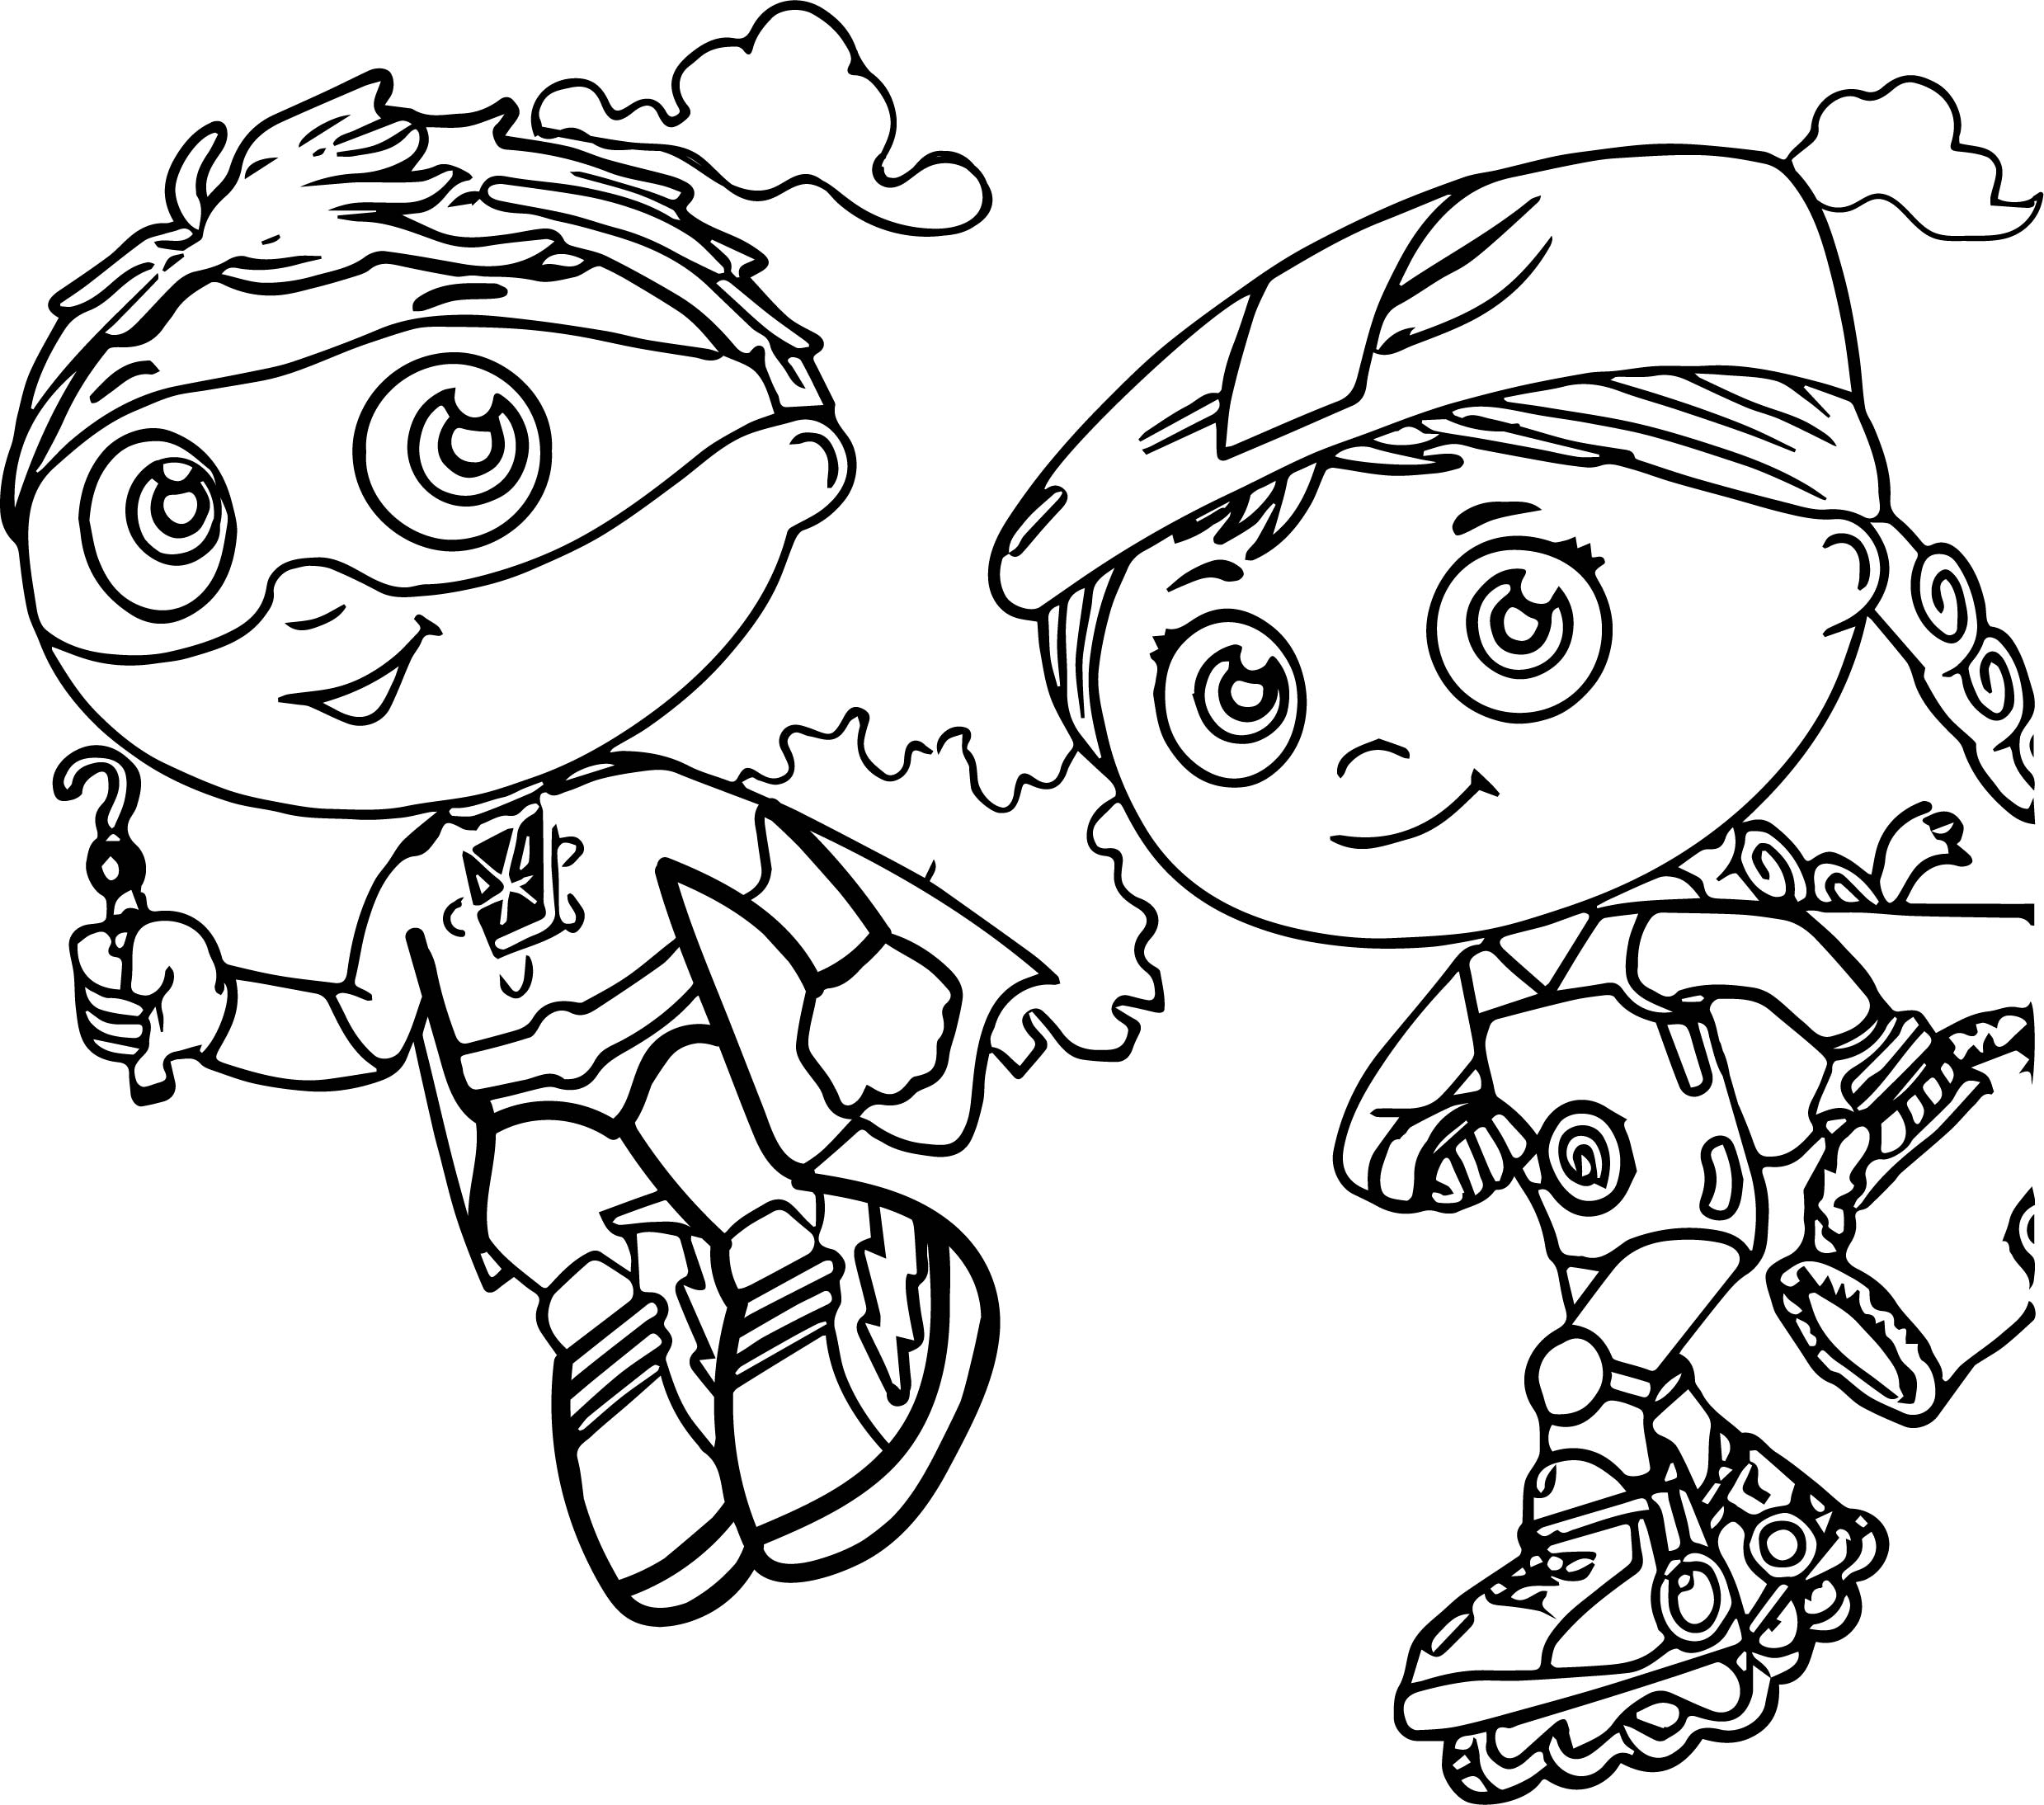 super why coloring pages free - photo#13